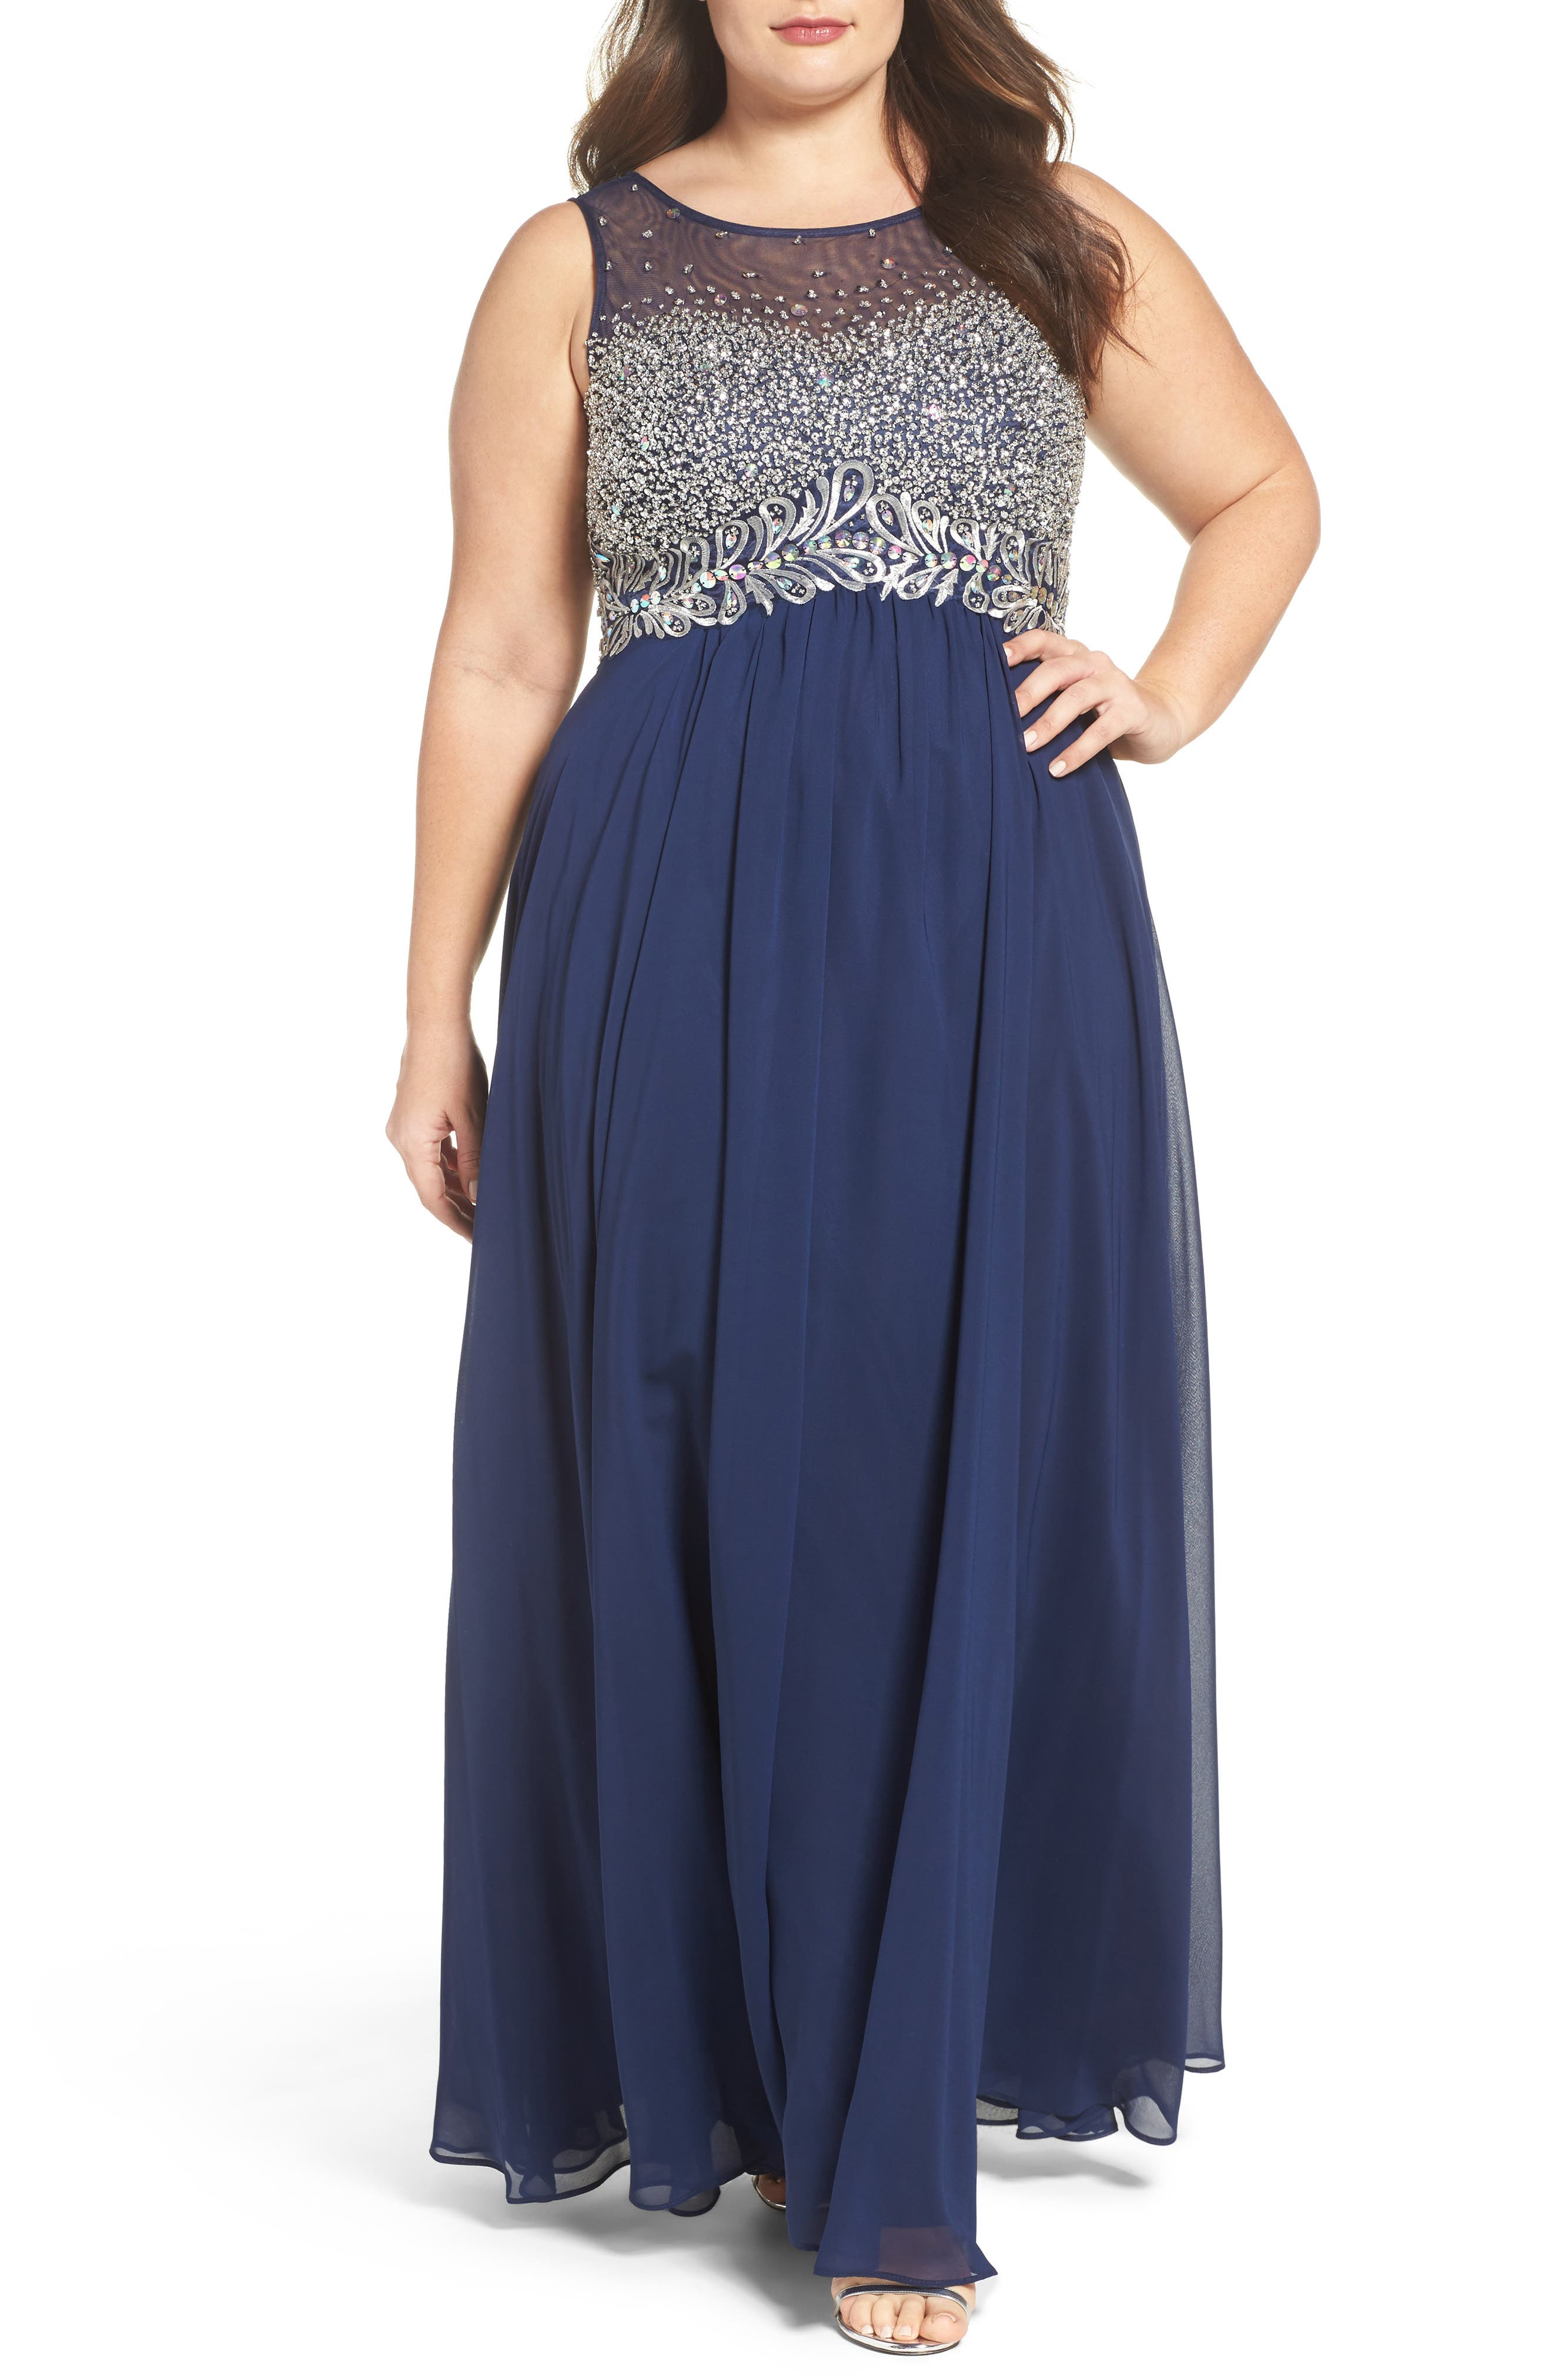 DECODE 1.8 Beaded Illusion Bodice A-Line Gown